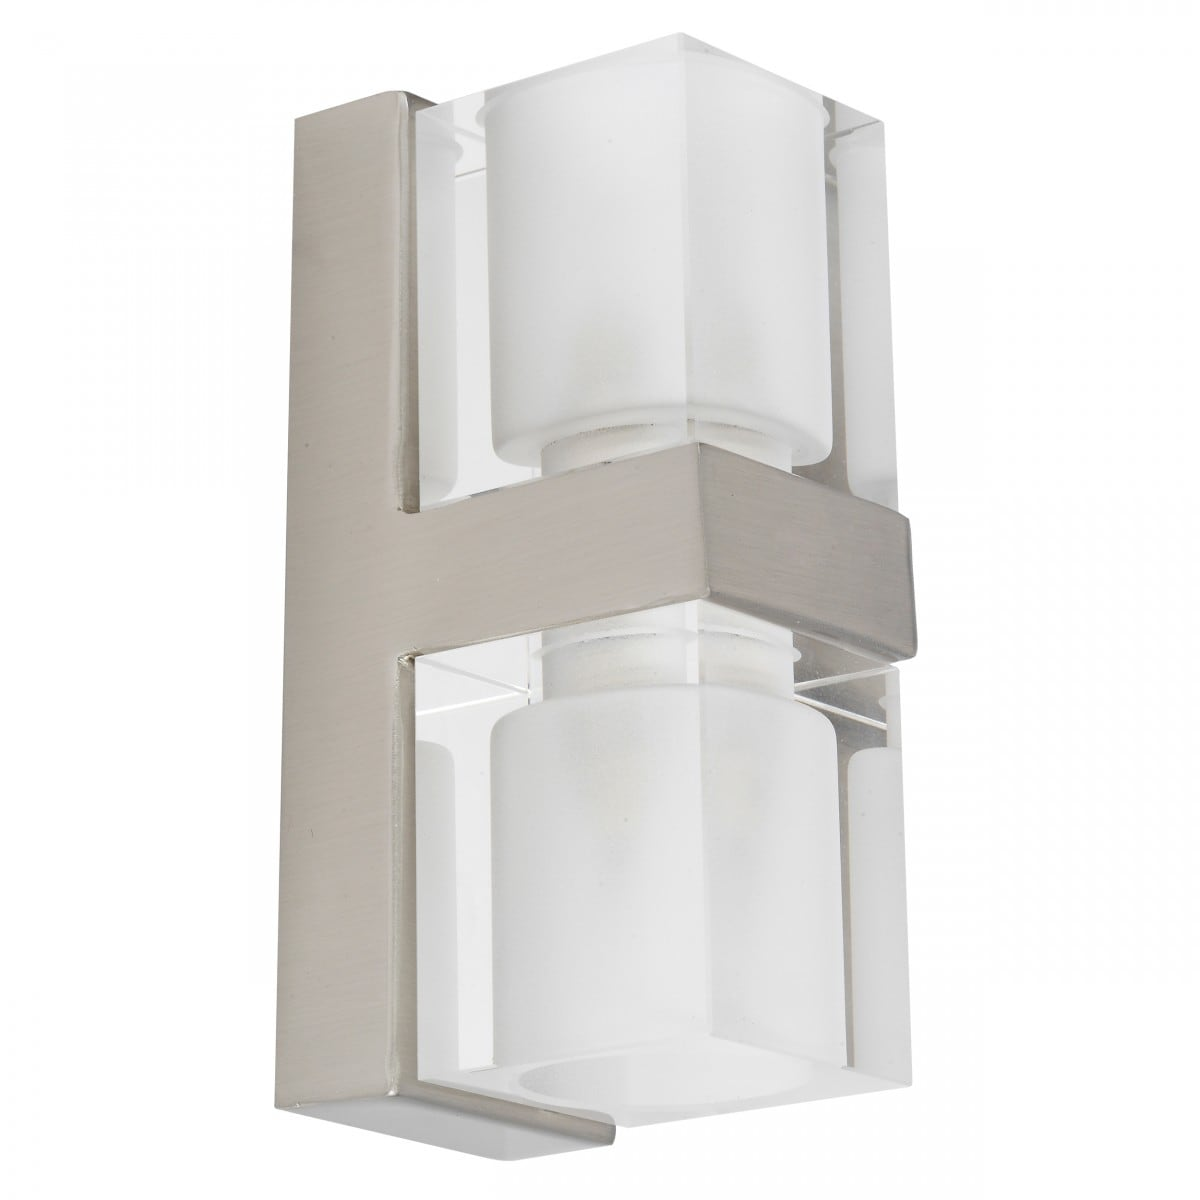 Genoa 2 wall lamp